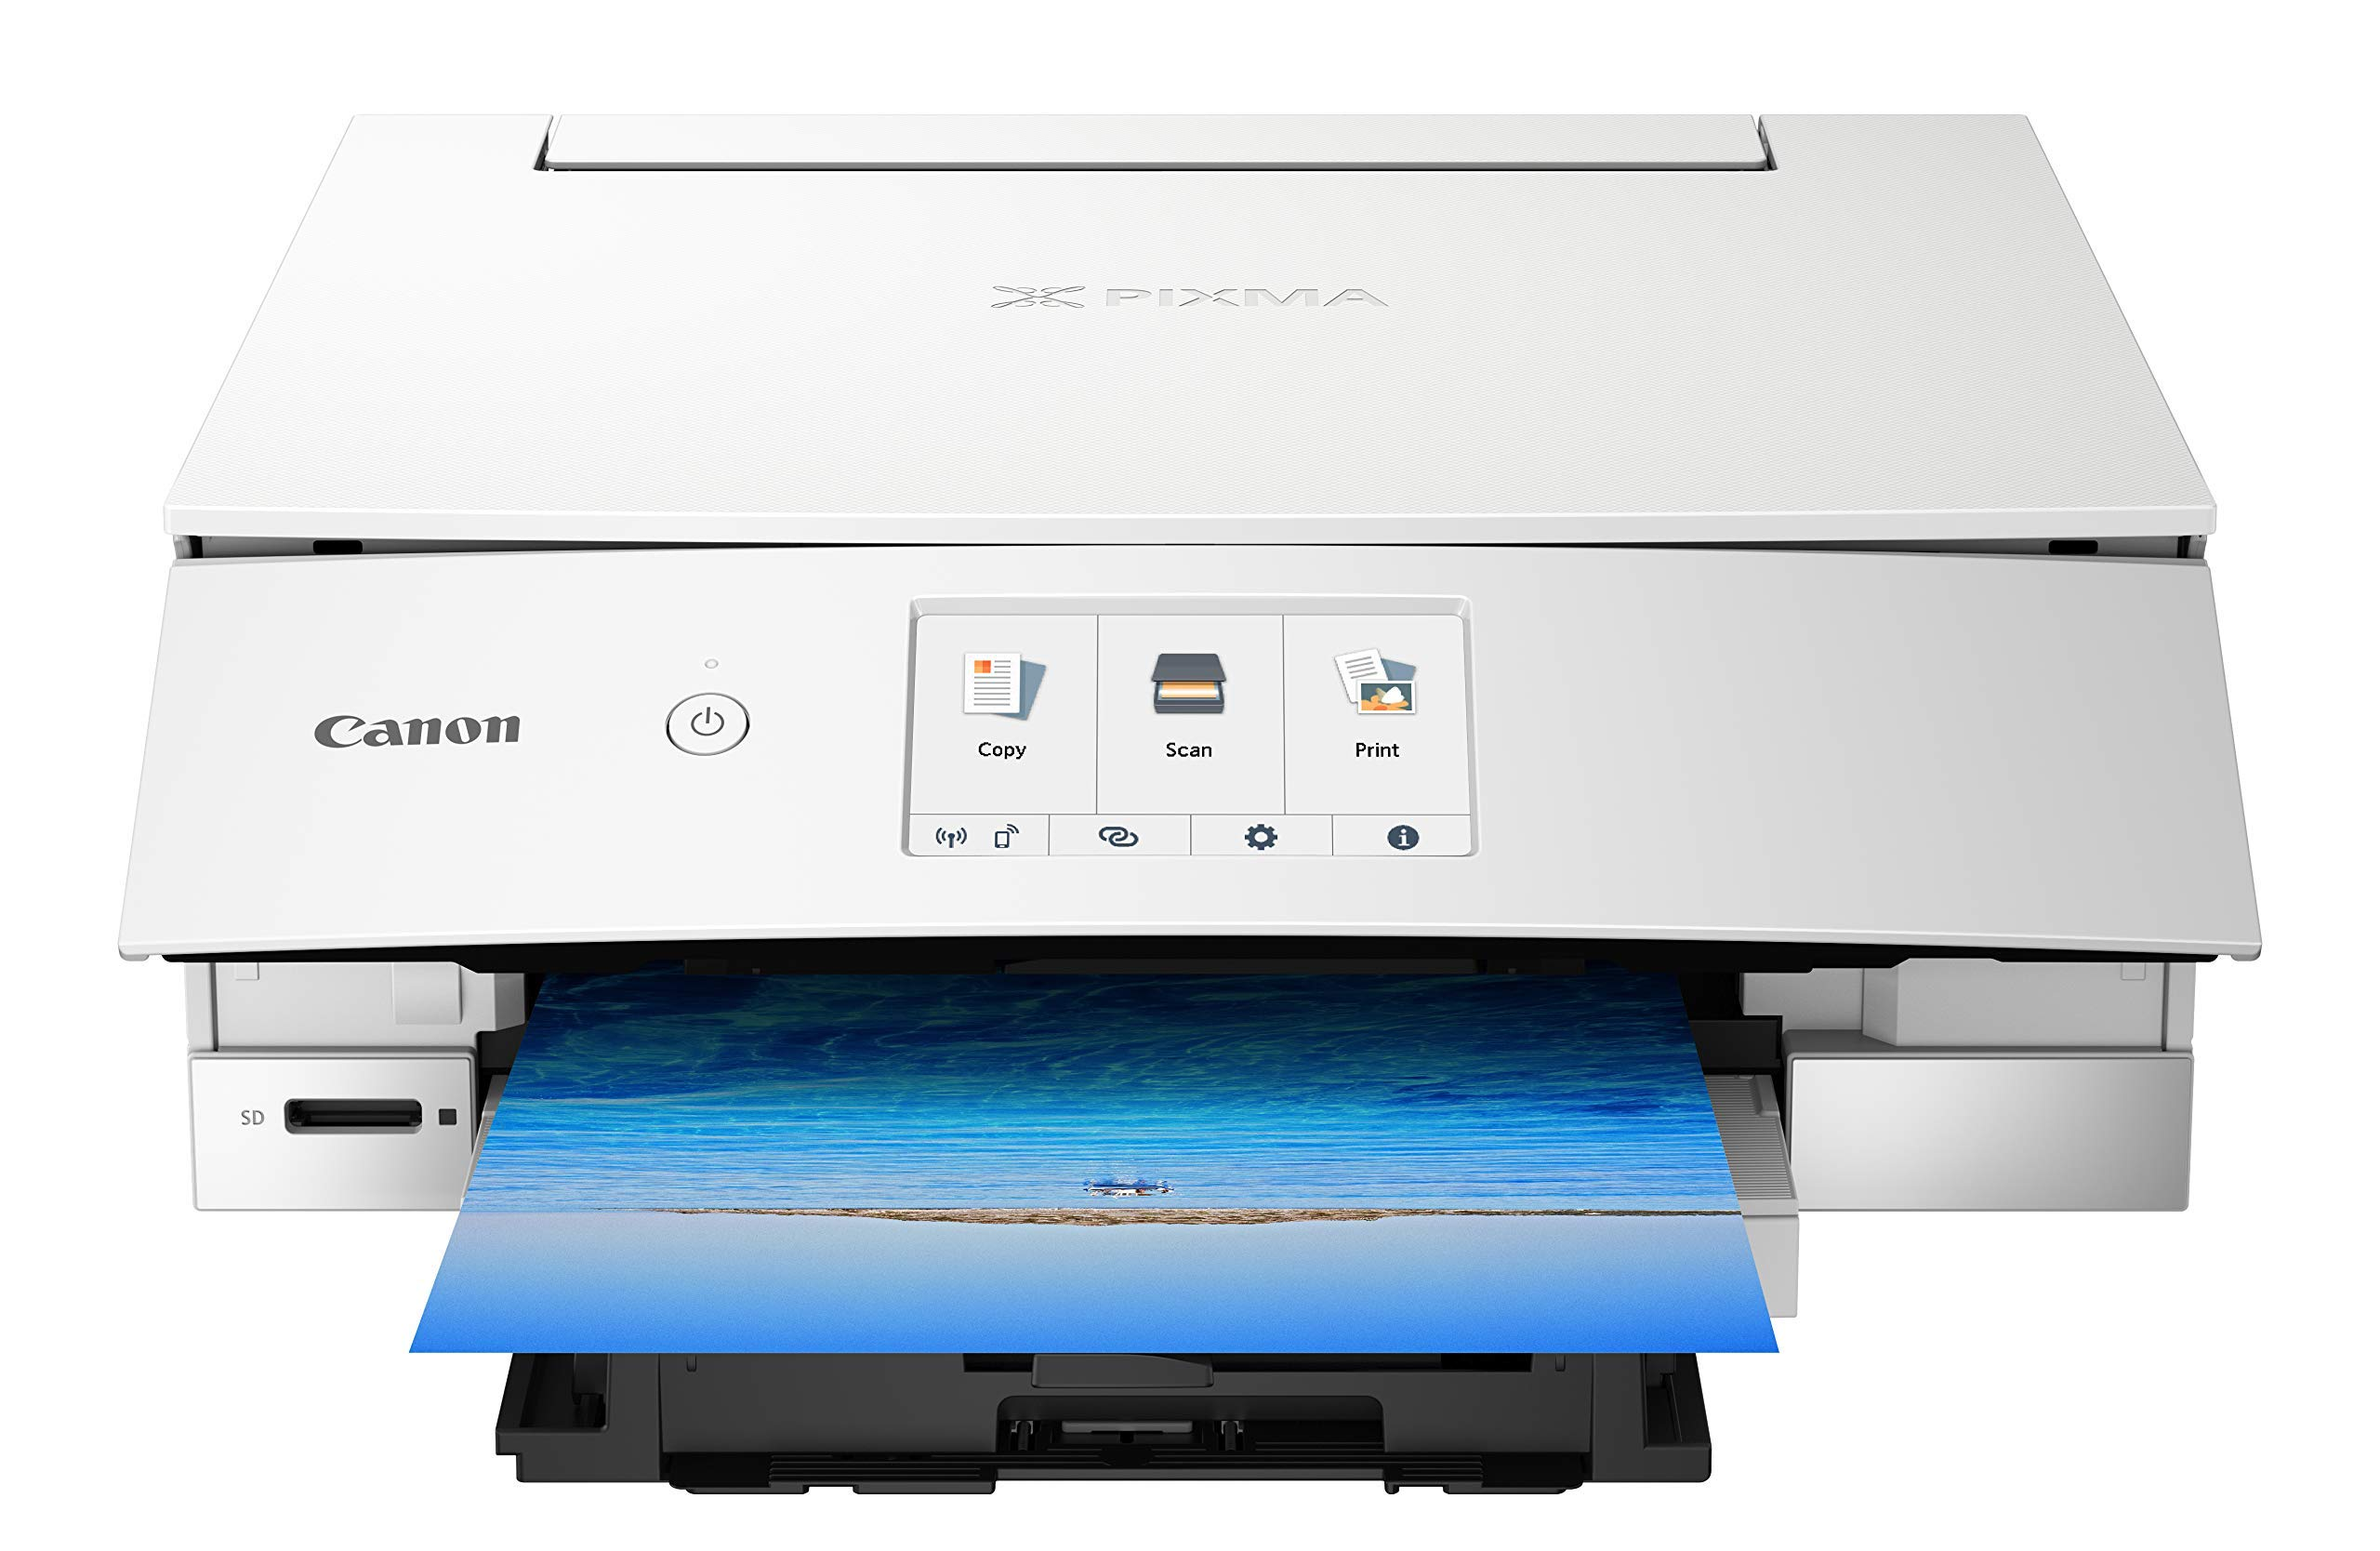 Canon TS8220 Wireless All in One Photo Printer with Scannier and Copier, Mobile Printing, White by Canon (Image #2)